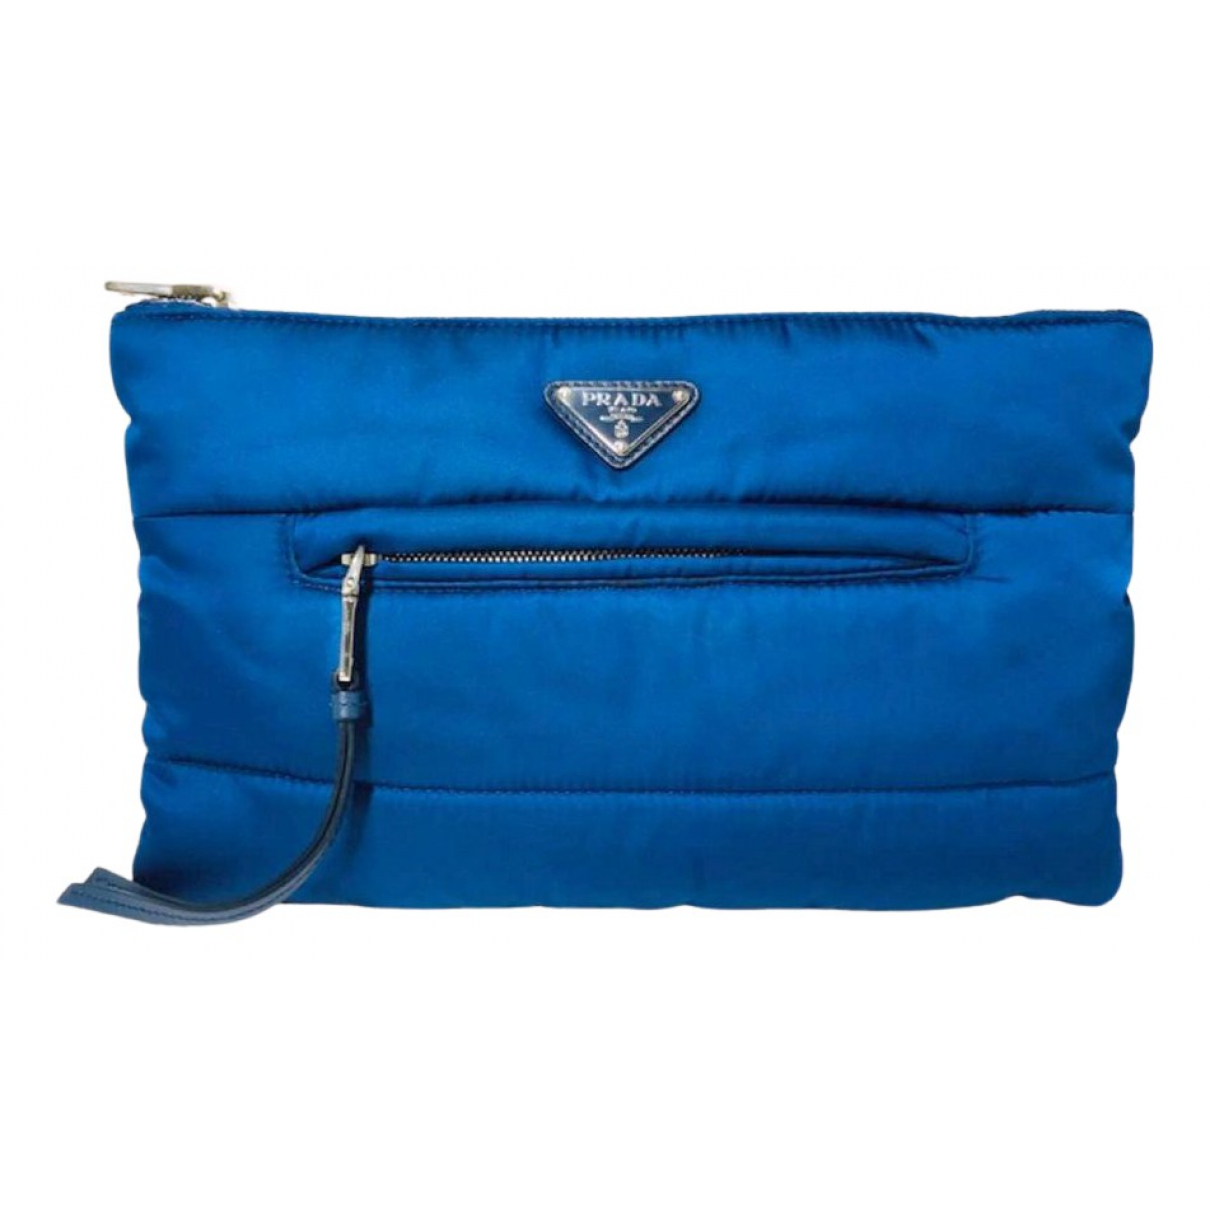 Prada N Navy Cloth Clutch bag for Women N